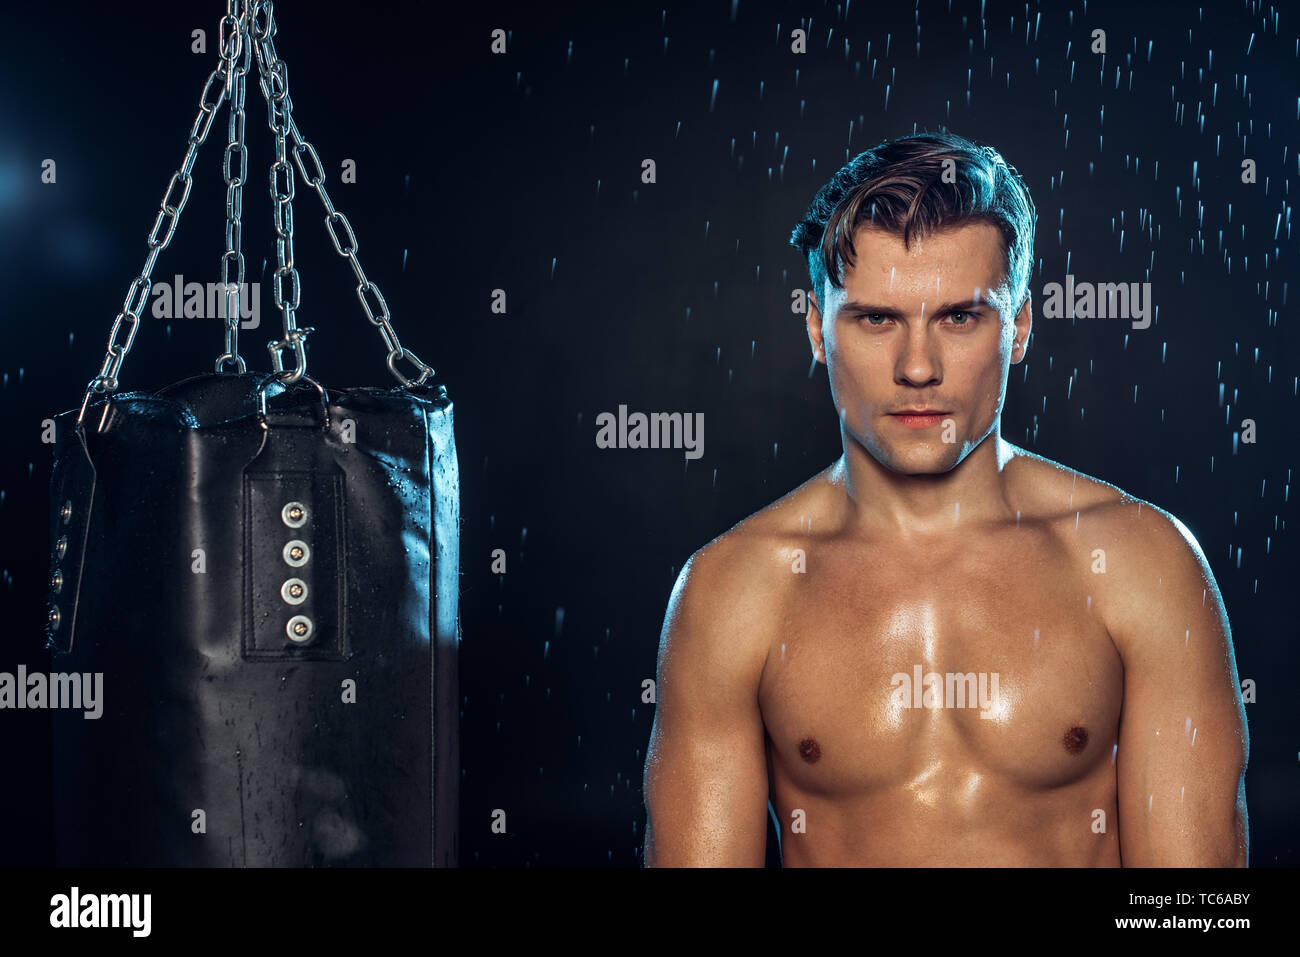 Front view of boxer standing near punching bag under water drops on black - Stock Image